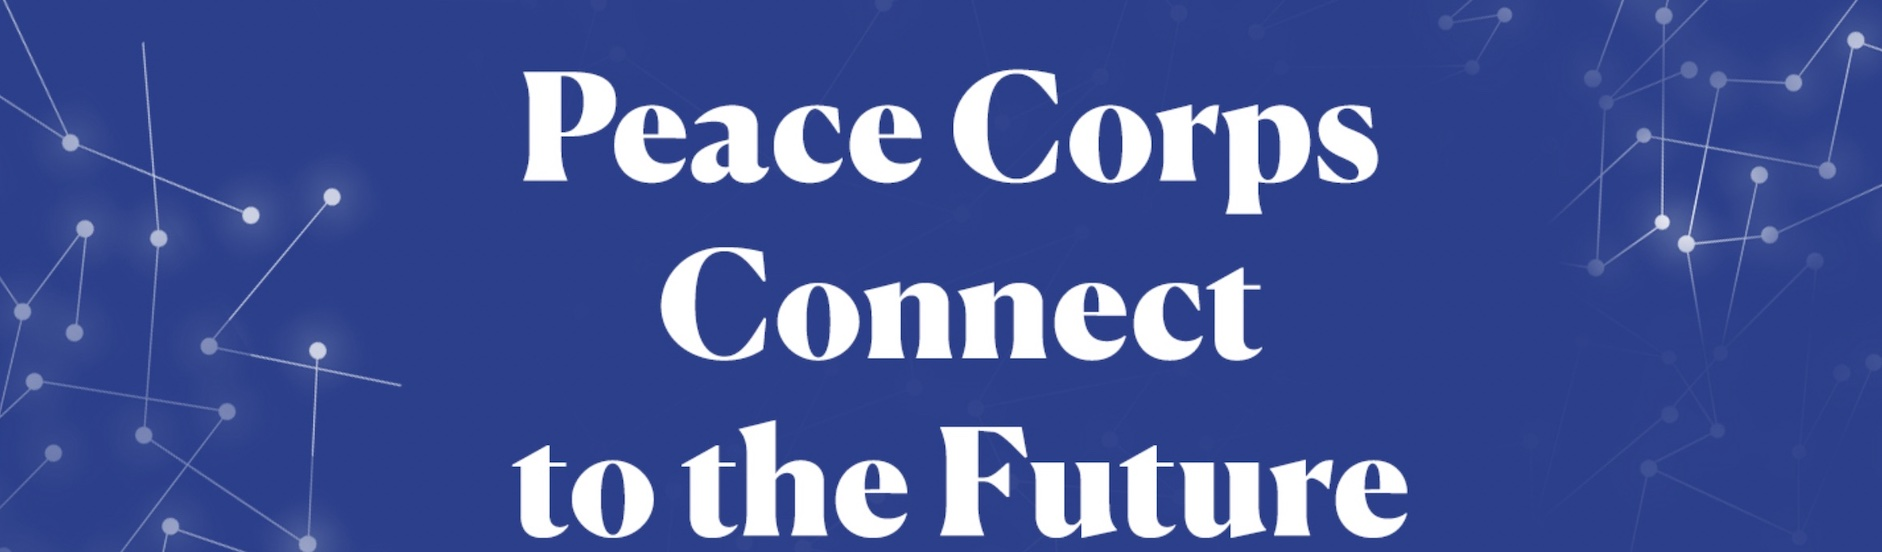 Peace Corps Connect to the Future